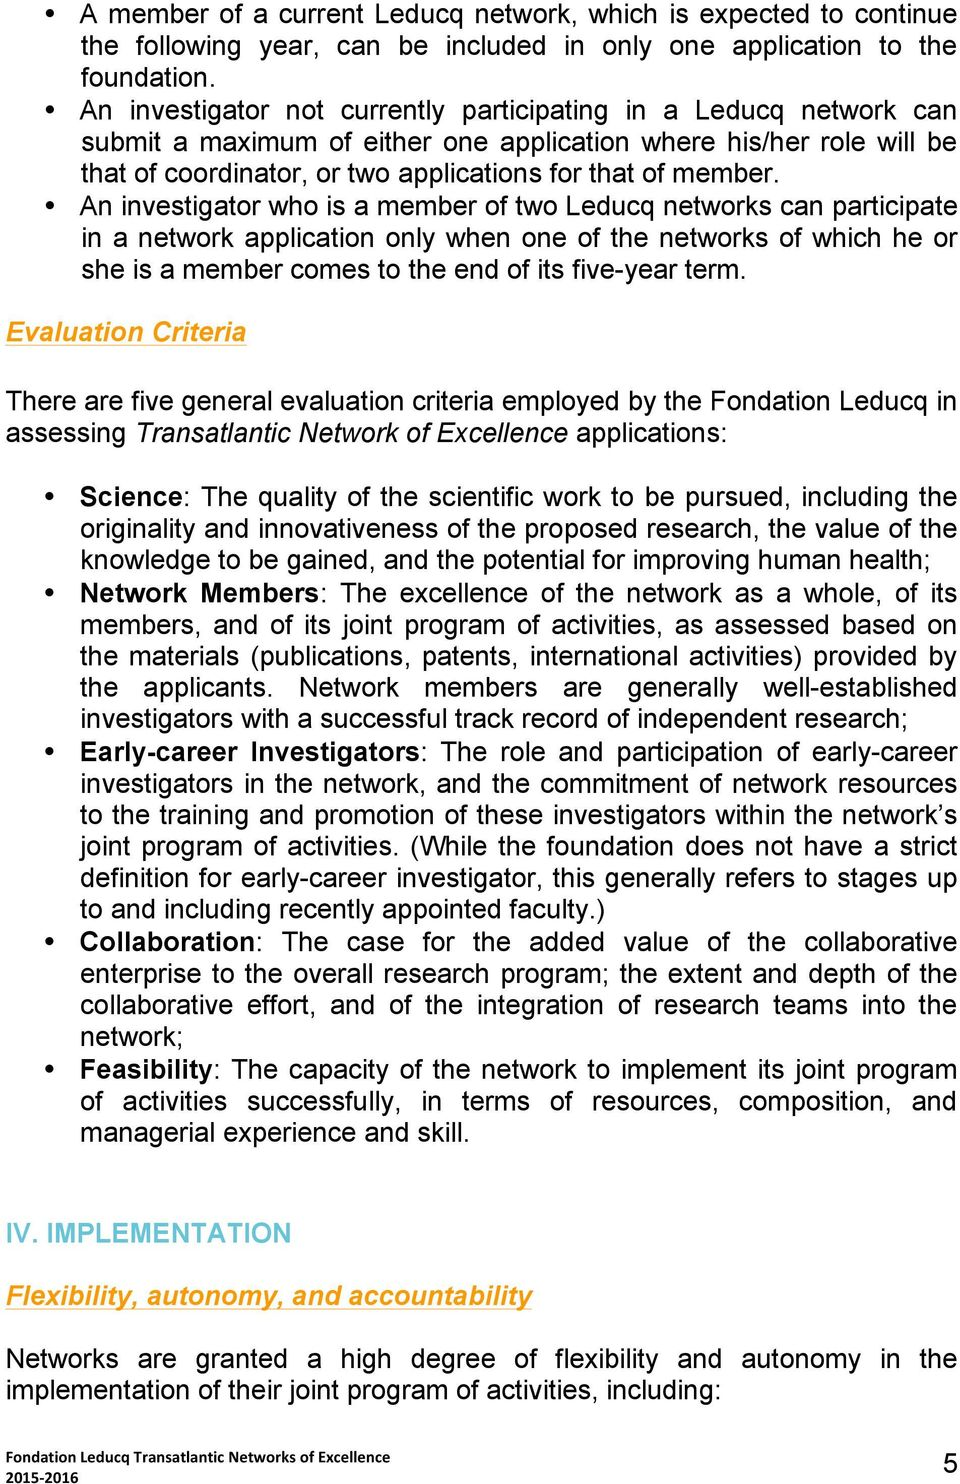 An investigator who is a member of two Leducq networks can participate in a network application only when one of the networks of which he or she is a member comes to the end of its five-year term.